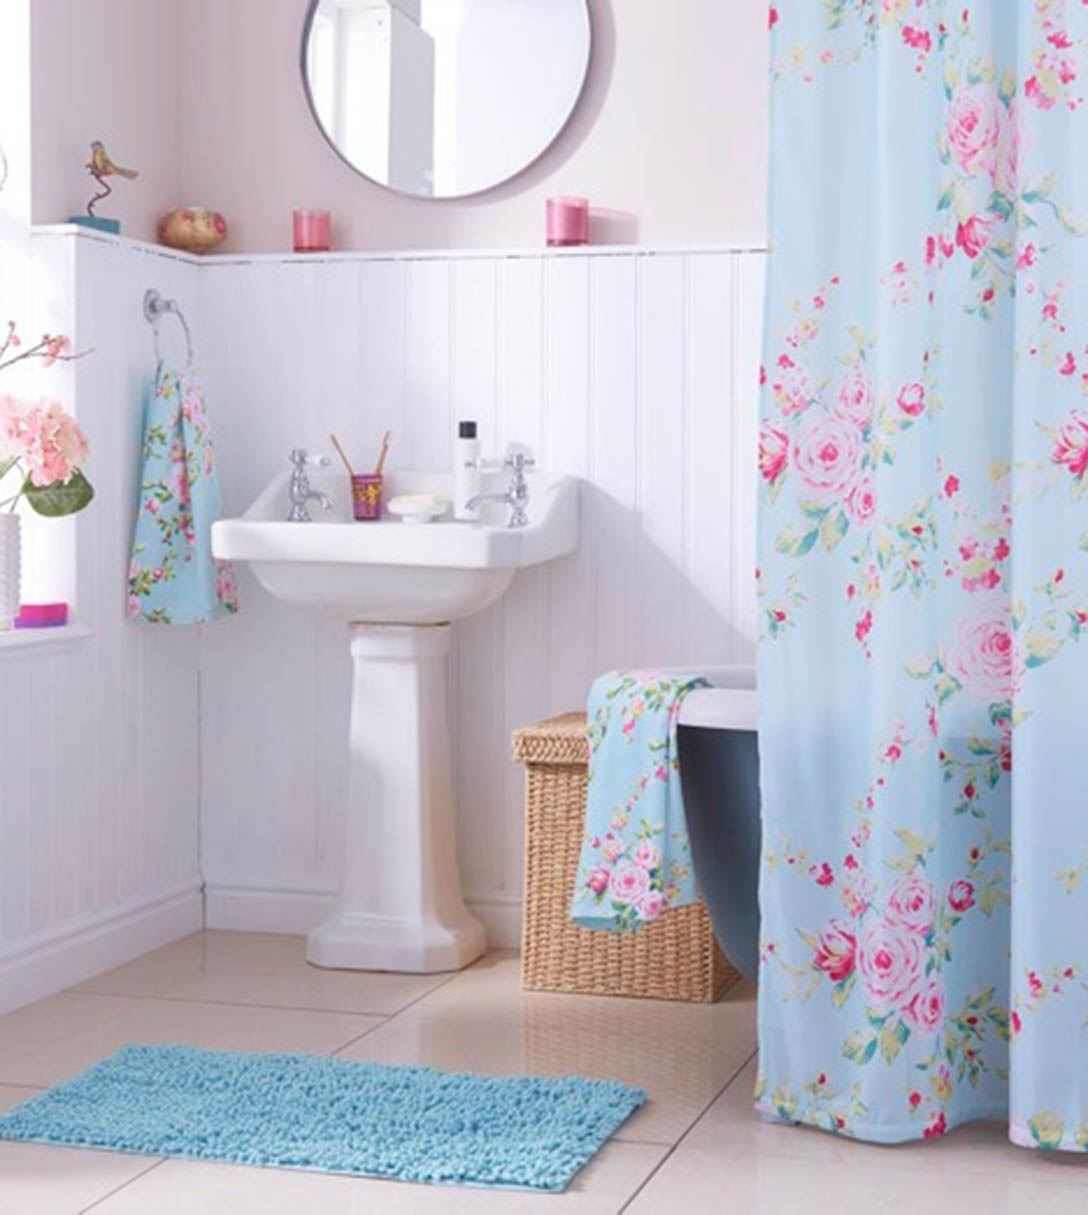 Canterbury bath range towels mat shower curtain floral for Floral bath accessories